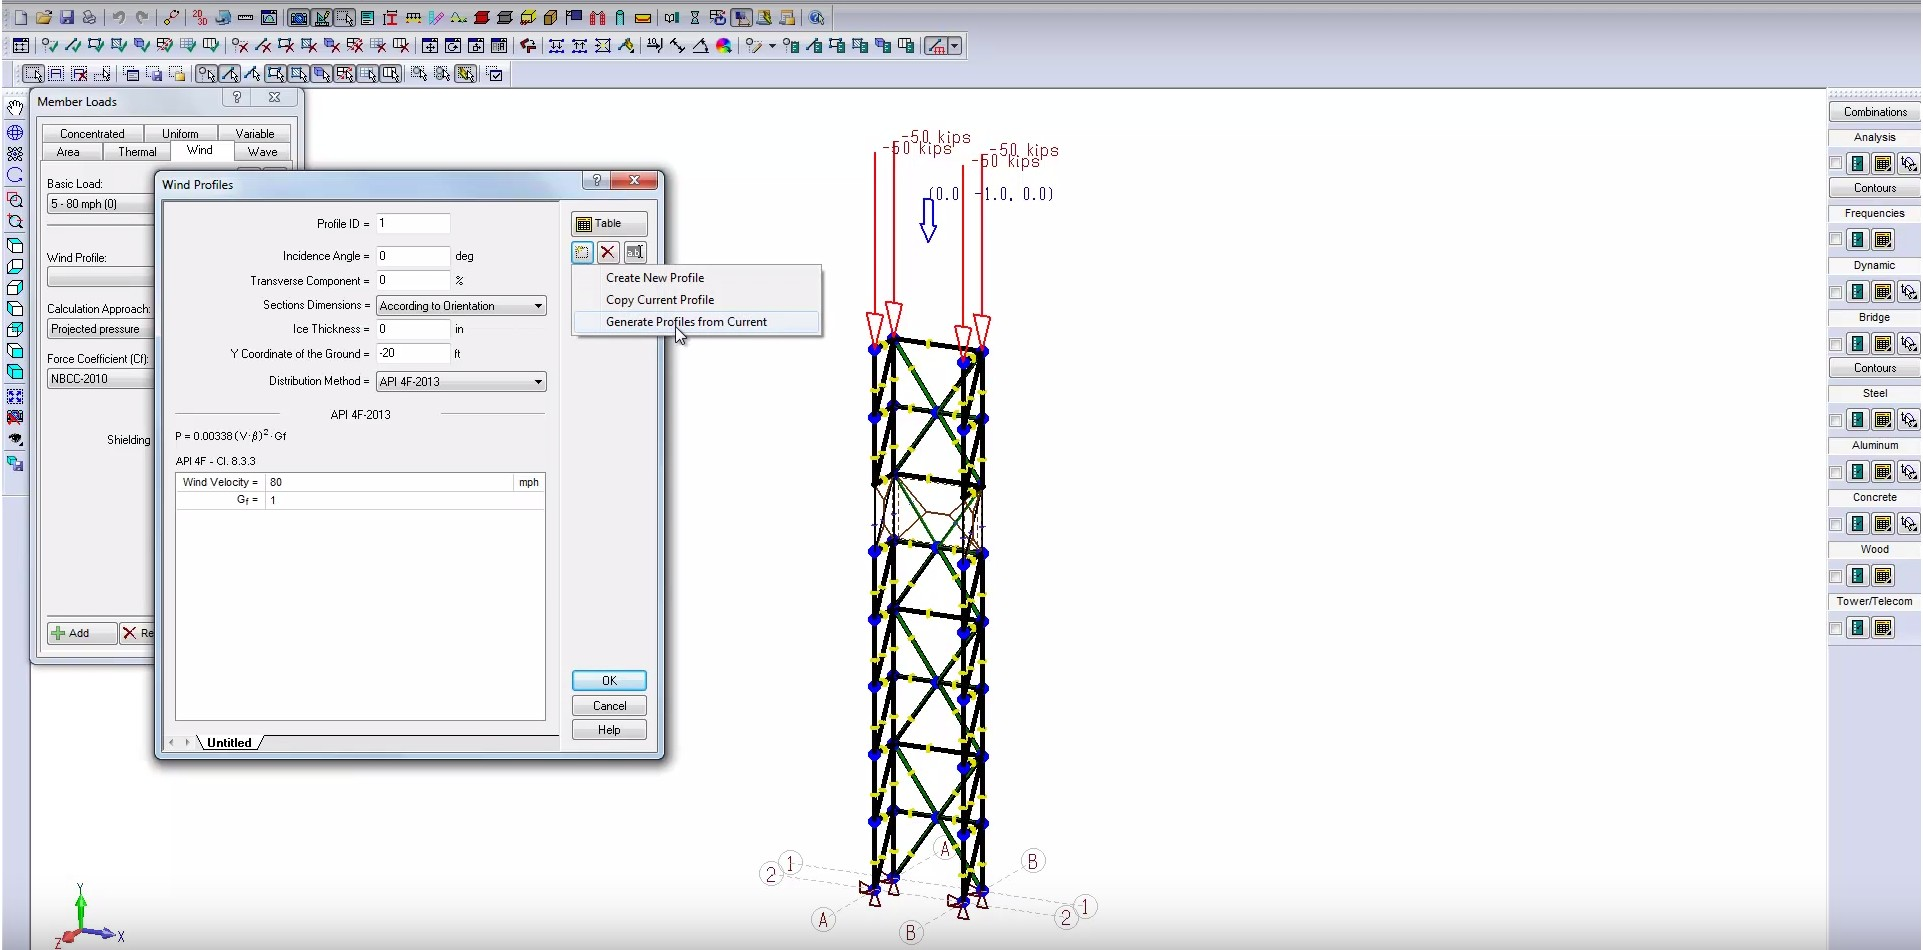 → MODELING AND ANALYSIS OF A MAST